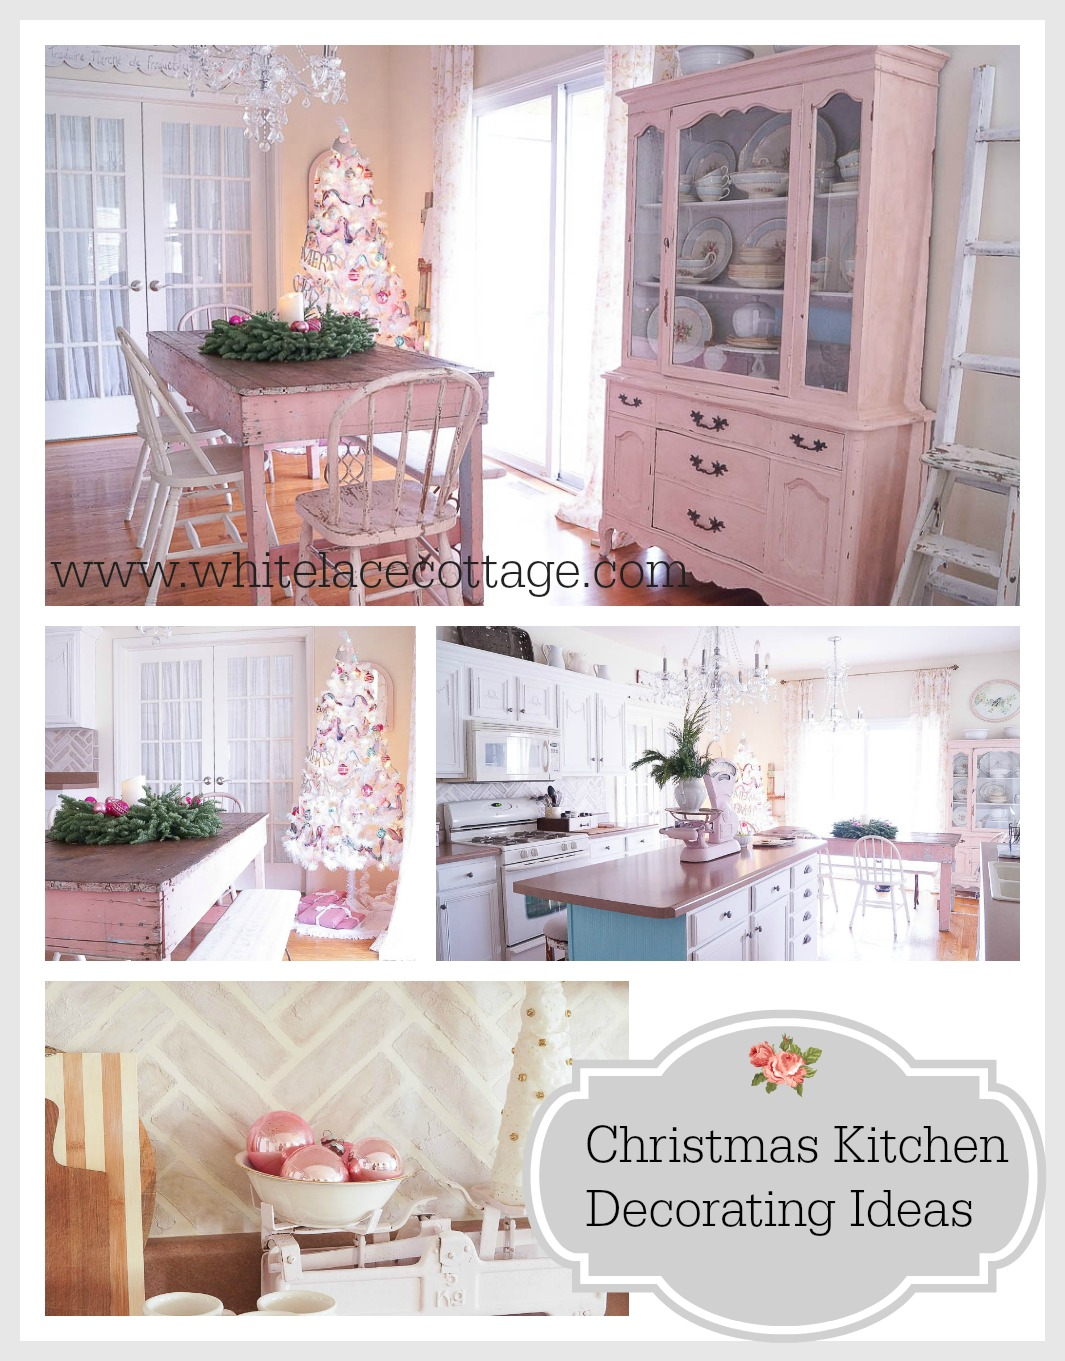 Christmas Kitchen Decorating Ideas www.whitelacecottage.com